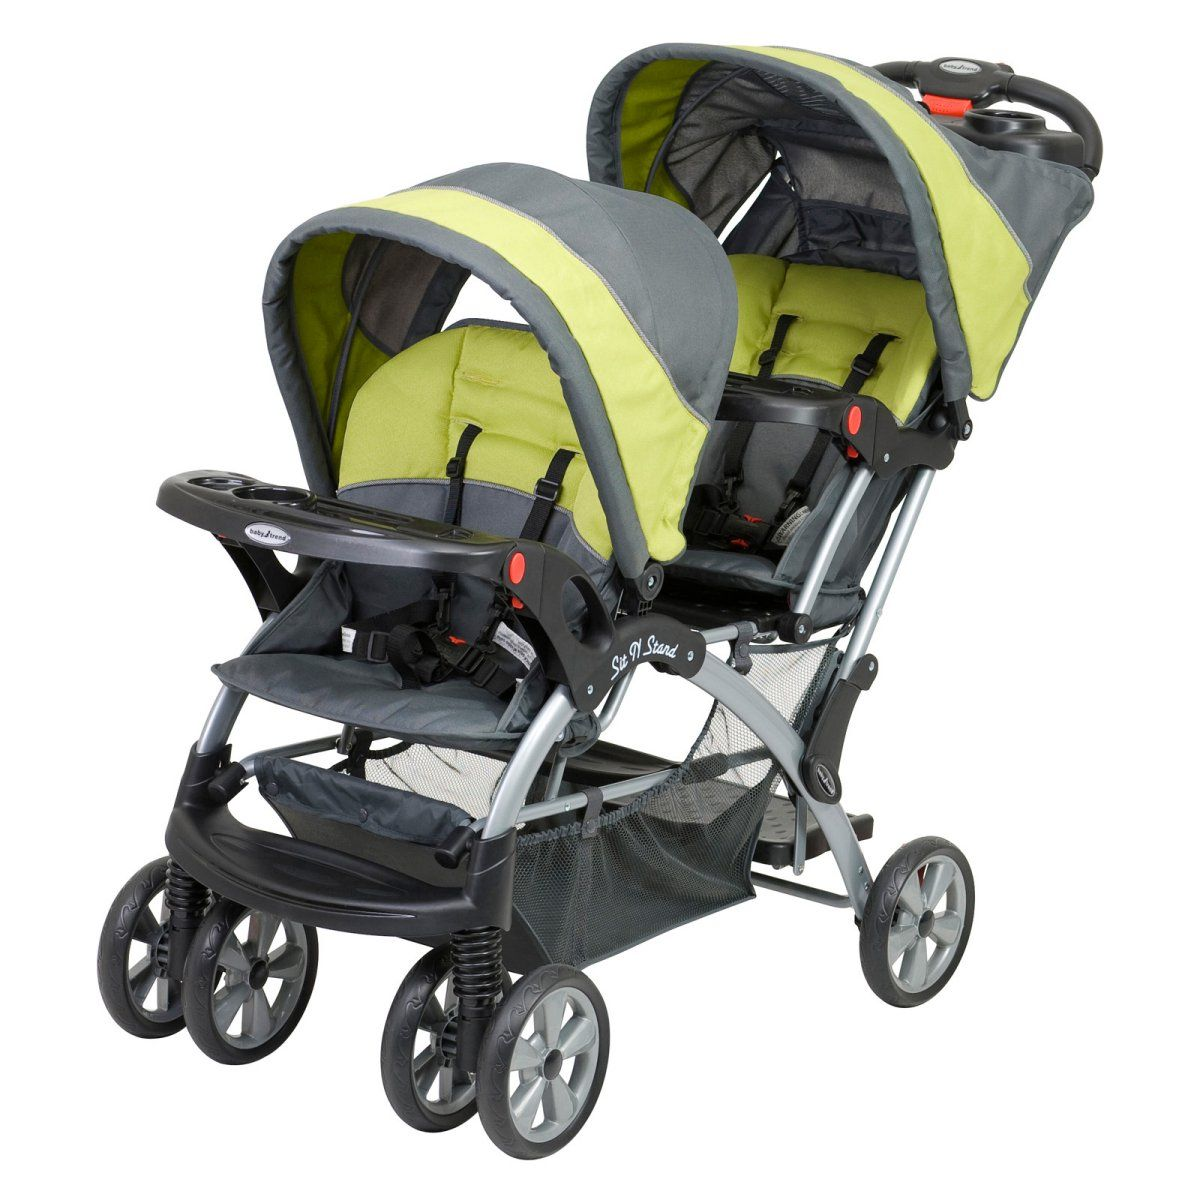 Baby Trend Sit N Stand Double Stroller Carbon Baby Trend Double Stroller Baby Trend Stroller Baby Strollers